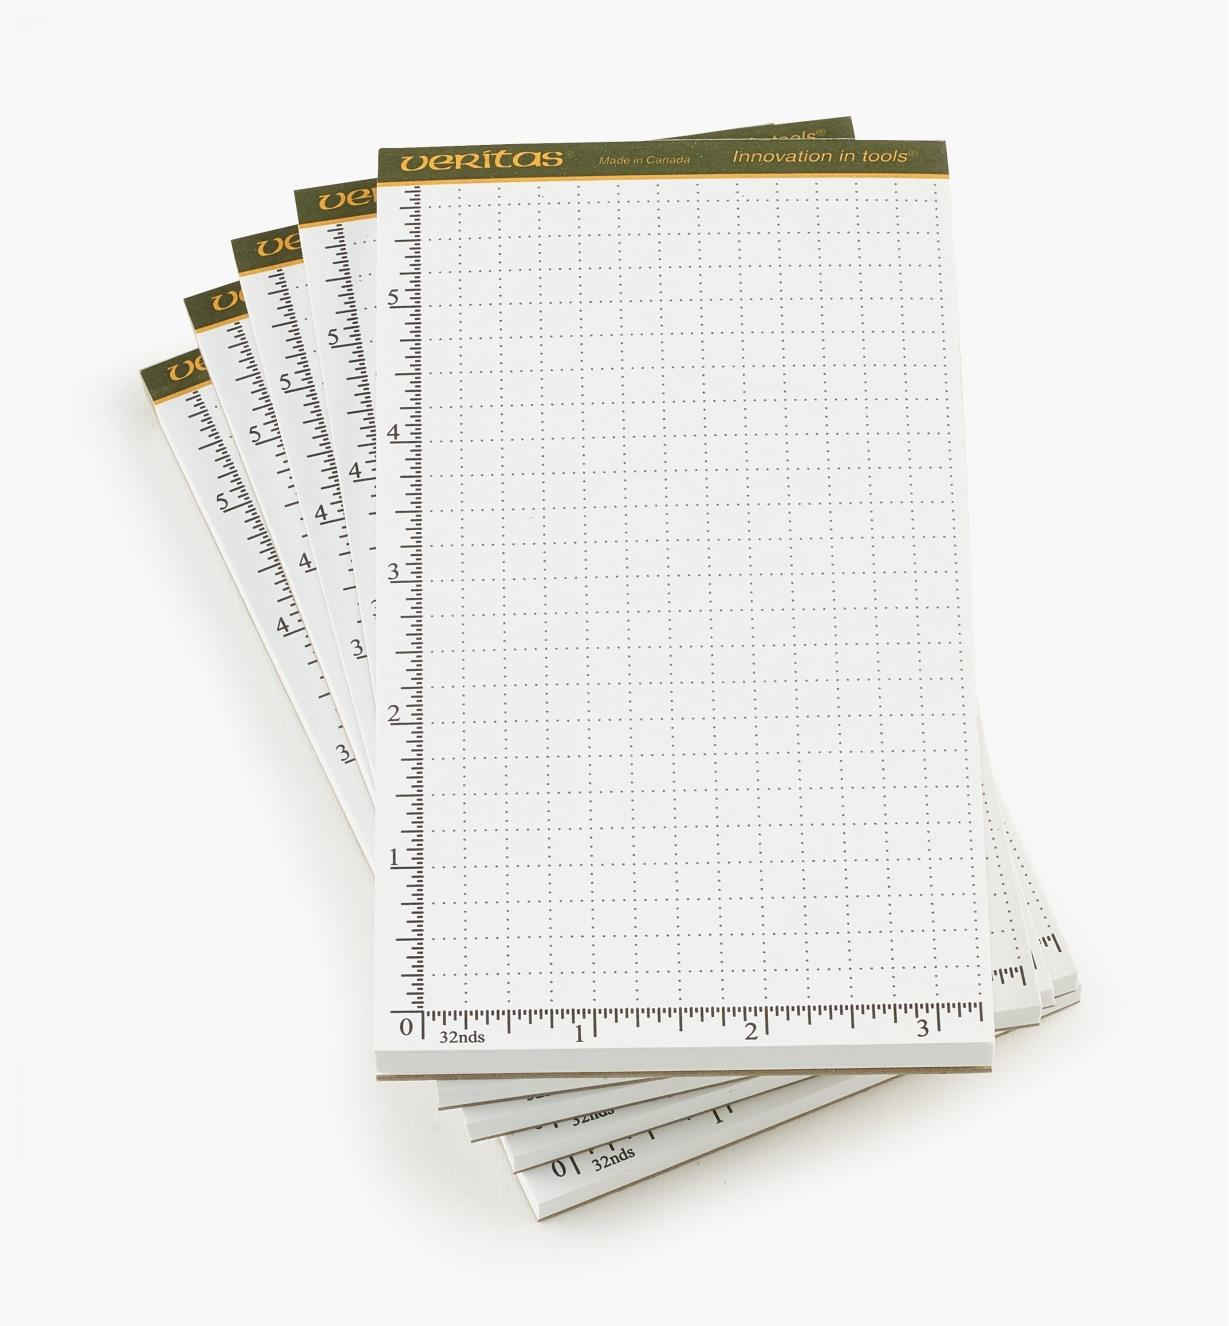 05L2120 - Blocs-notes Veritas de 3 1/2 po x 6 po, 50 feuilles, le paquet de 5